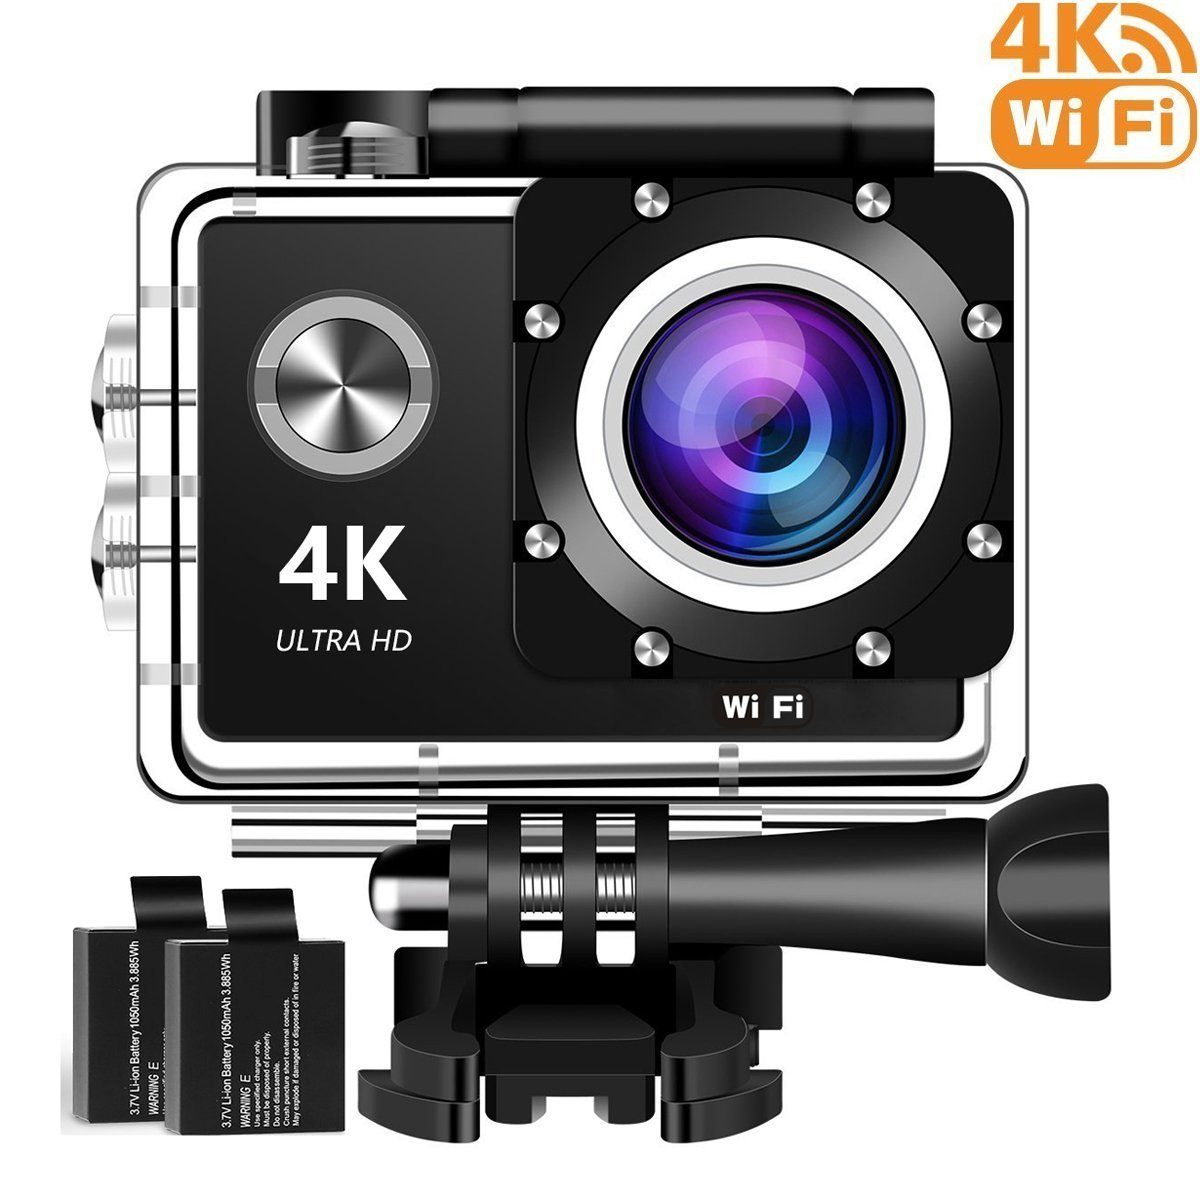 4K Action Camera, 16MP WiFi Ultra HD Underwater Waterproof 30M Sports Camcorder with 170° Degree Wide Angle Lens, 2 Rechargeable Batteries and Mounting Accessories Kits 8602